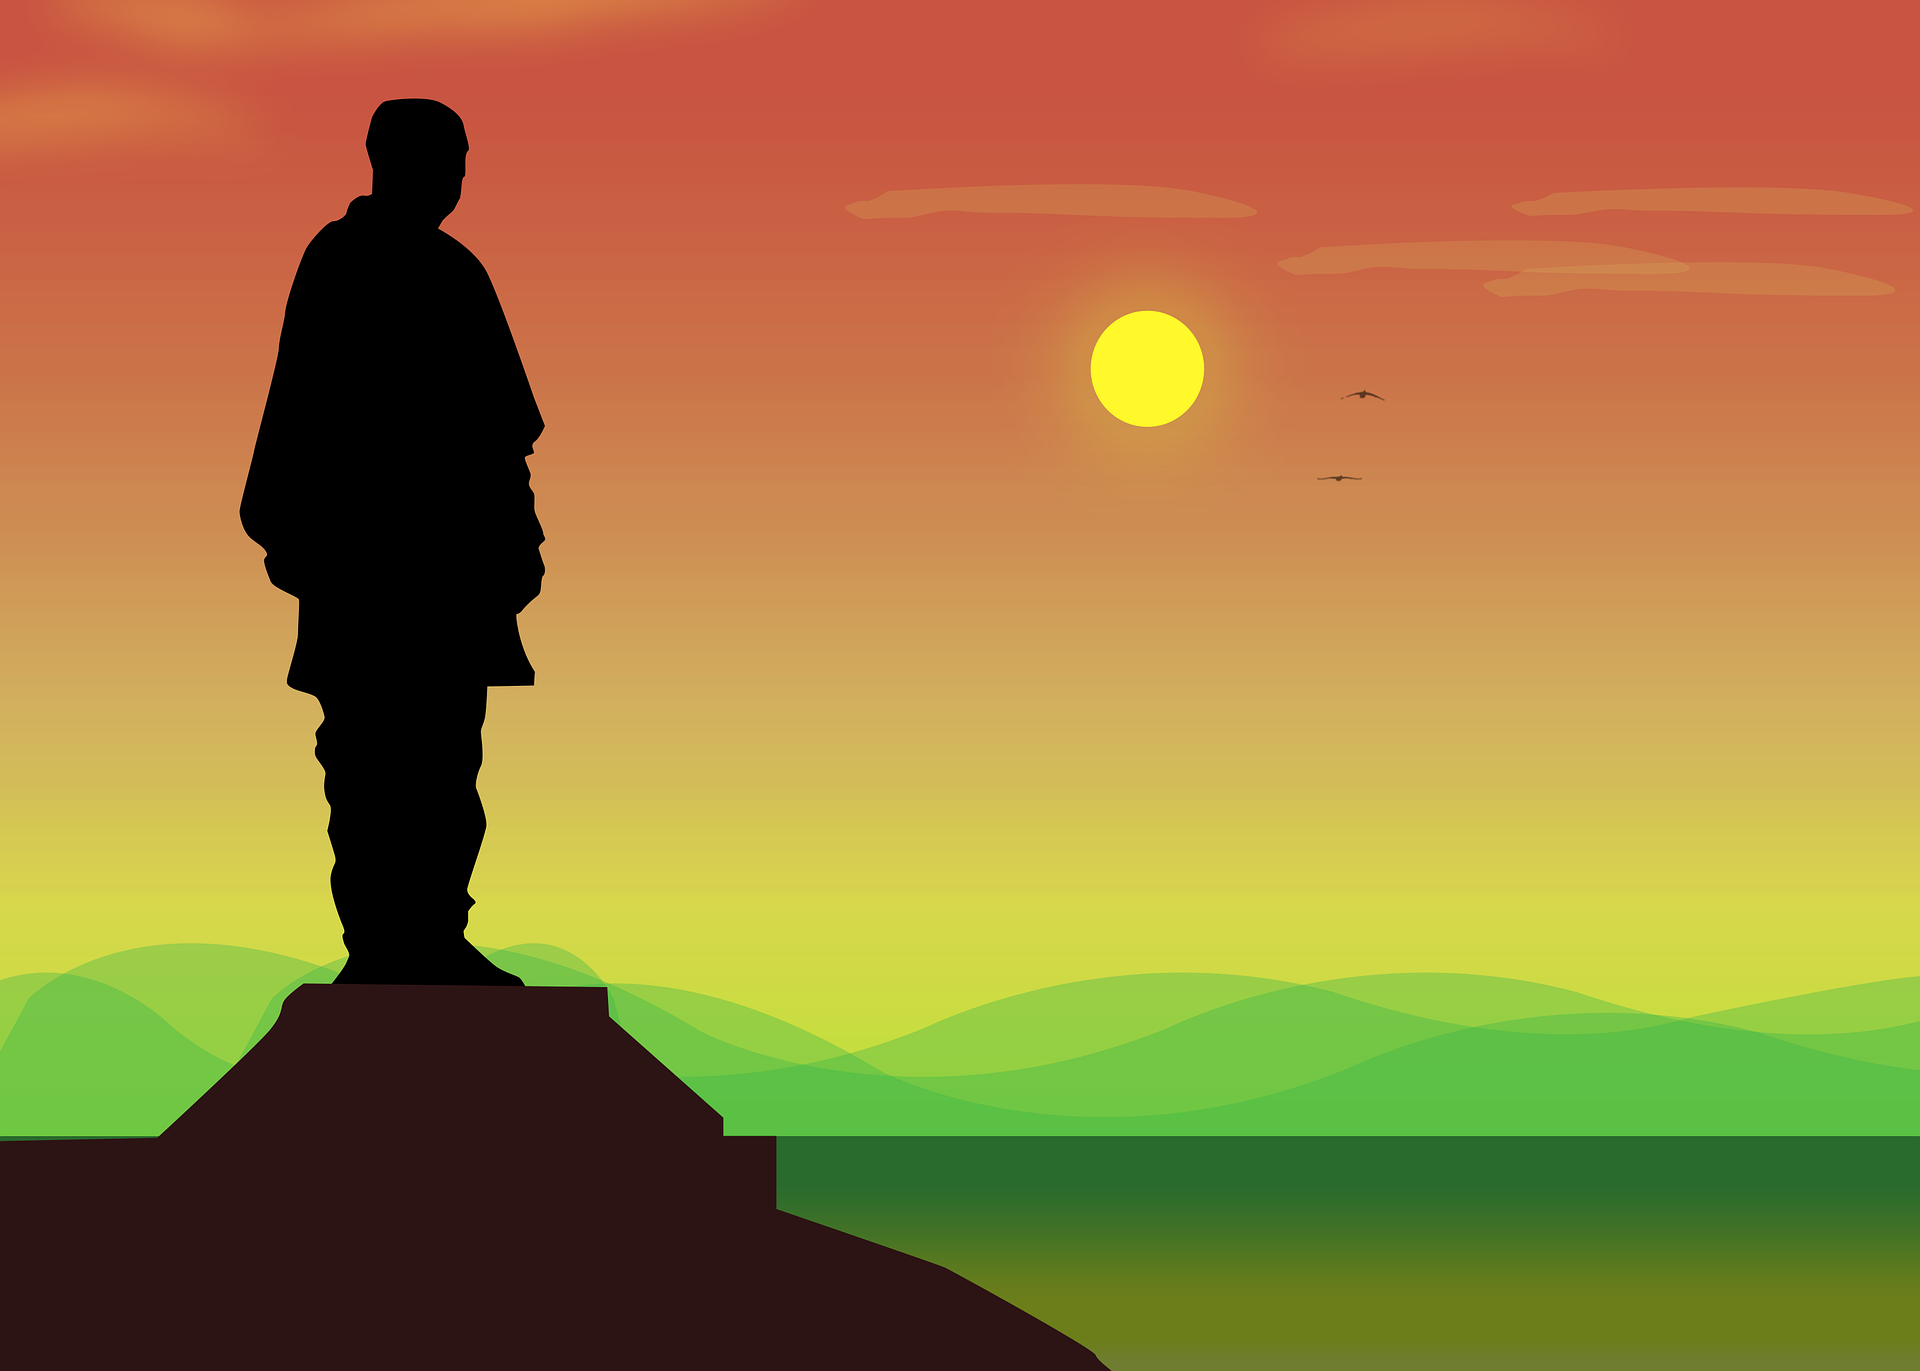 Statue of Unity: All you need to know about the Tallest Statue in the World